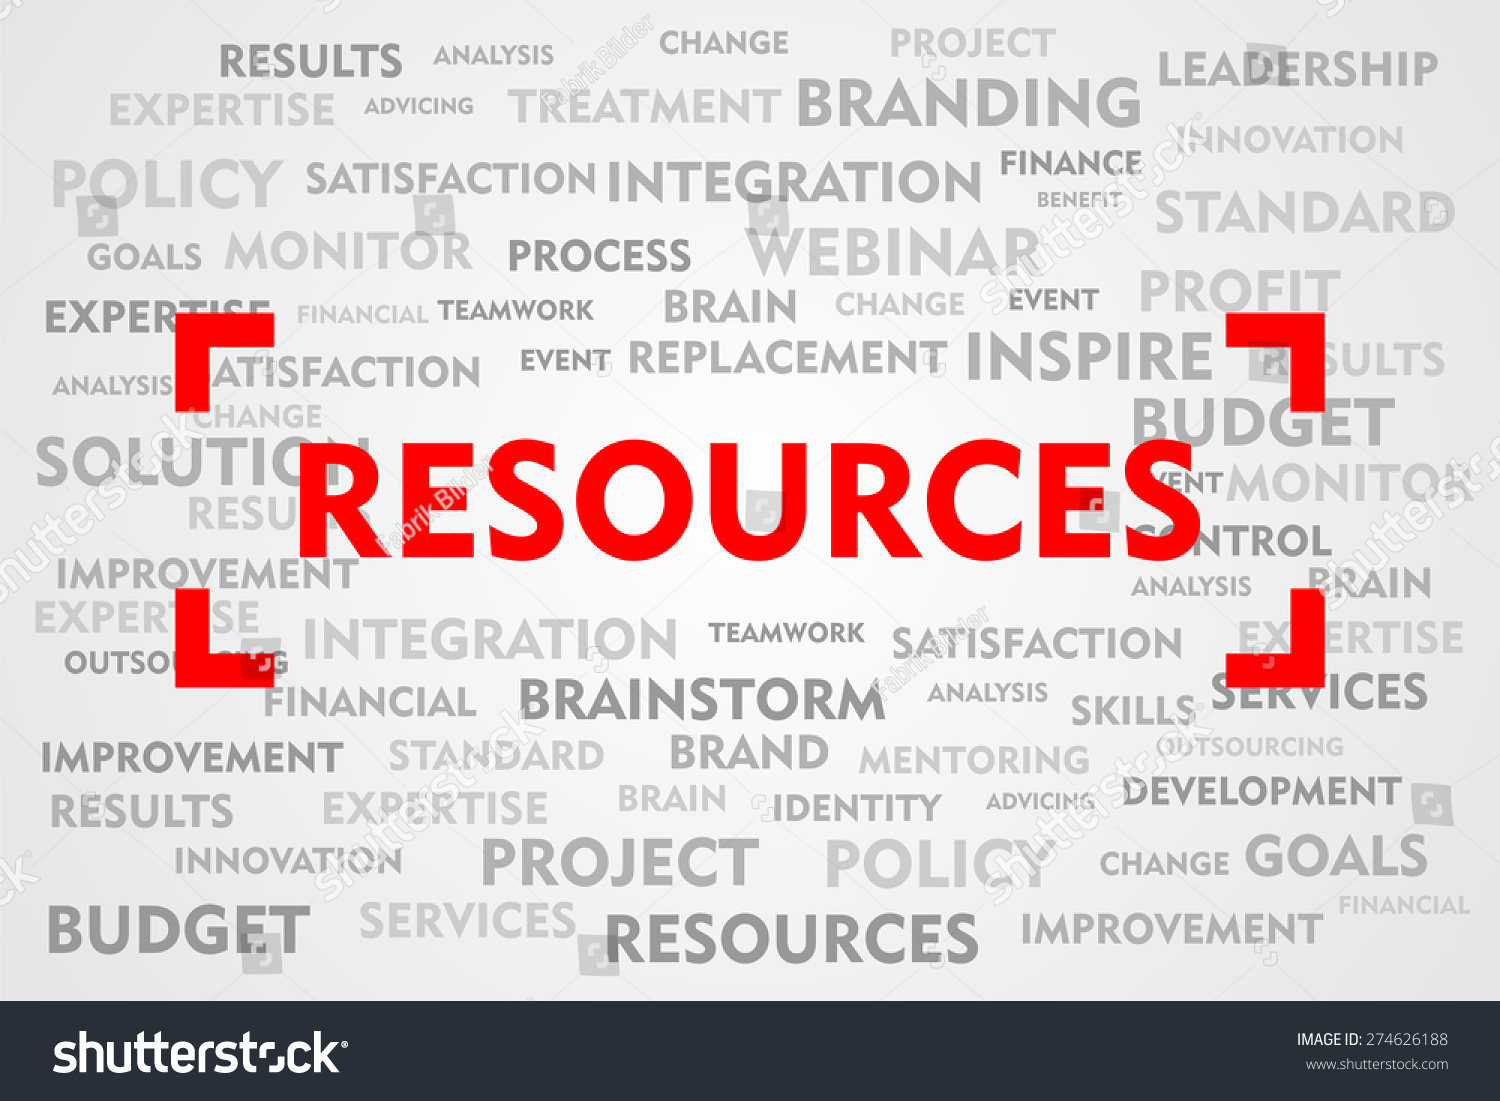 Royalty Free Stock Illustration of RESOURCES Word Business